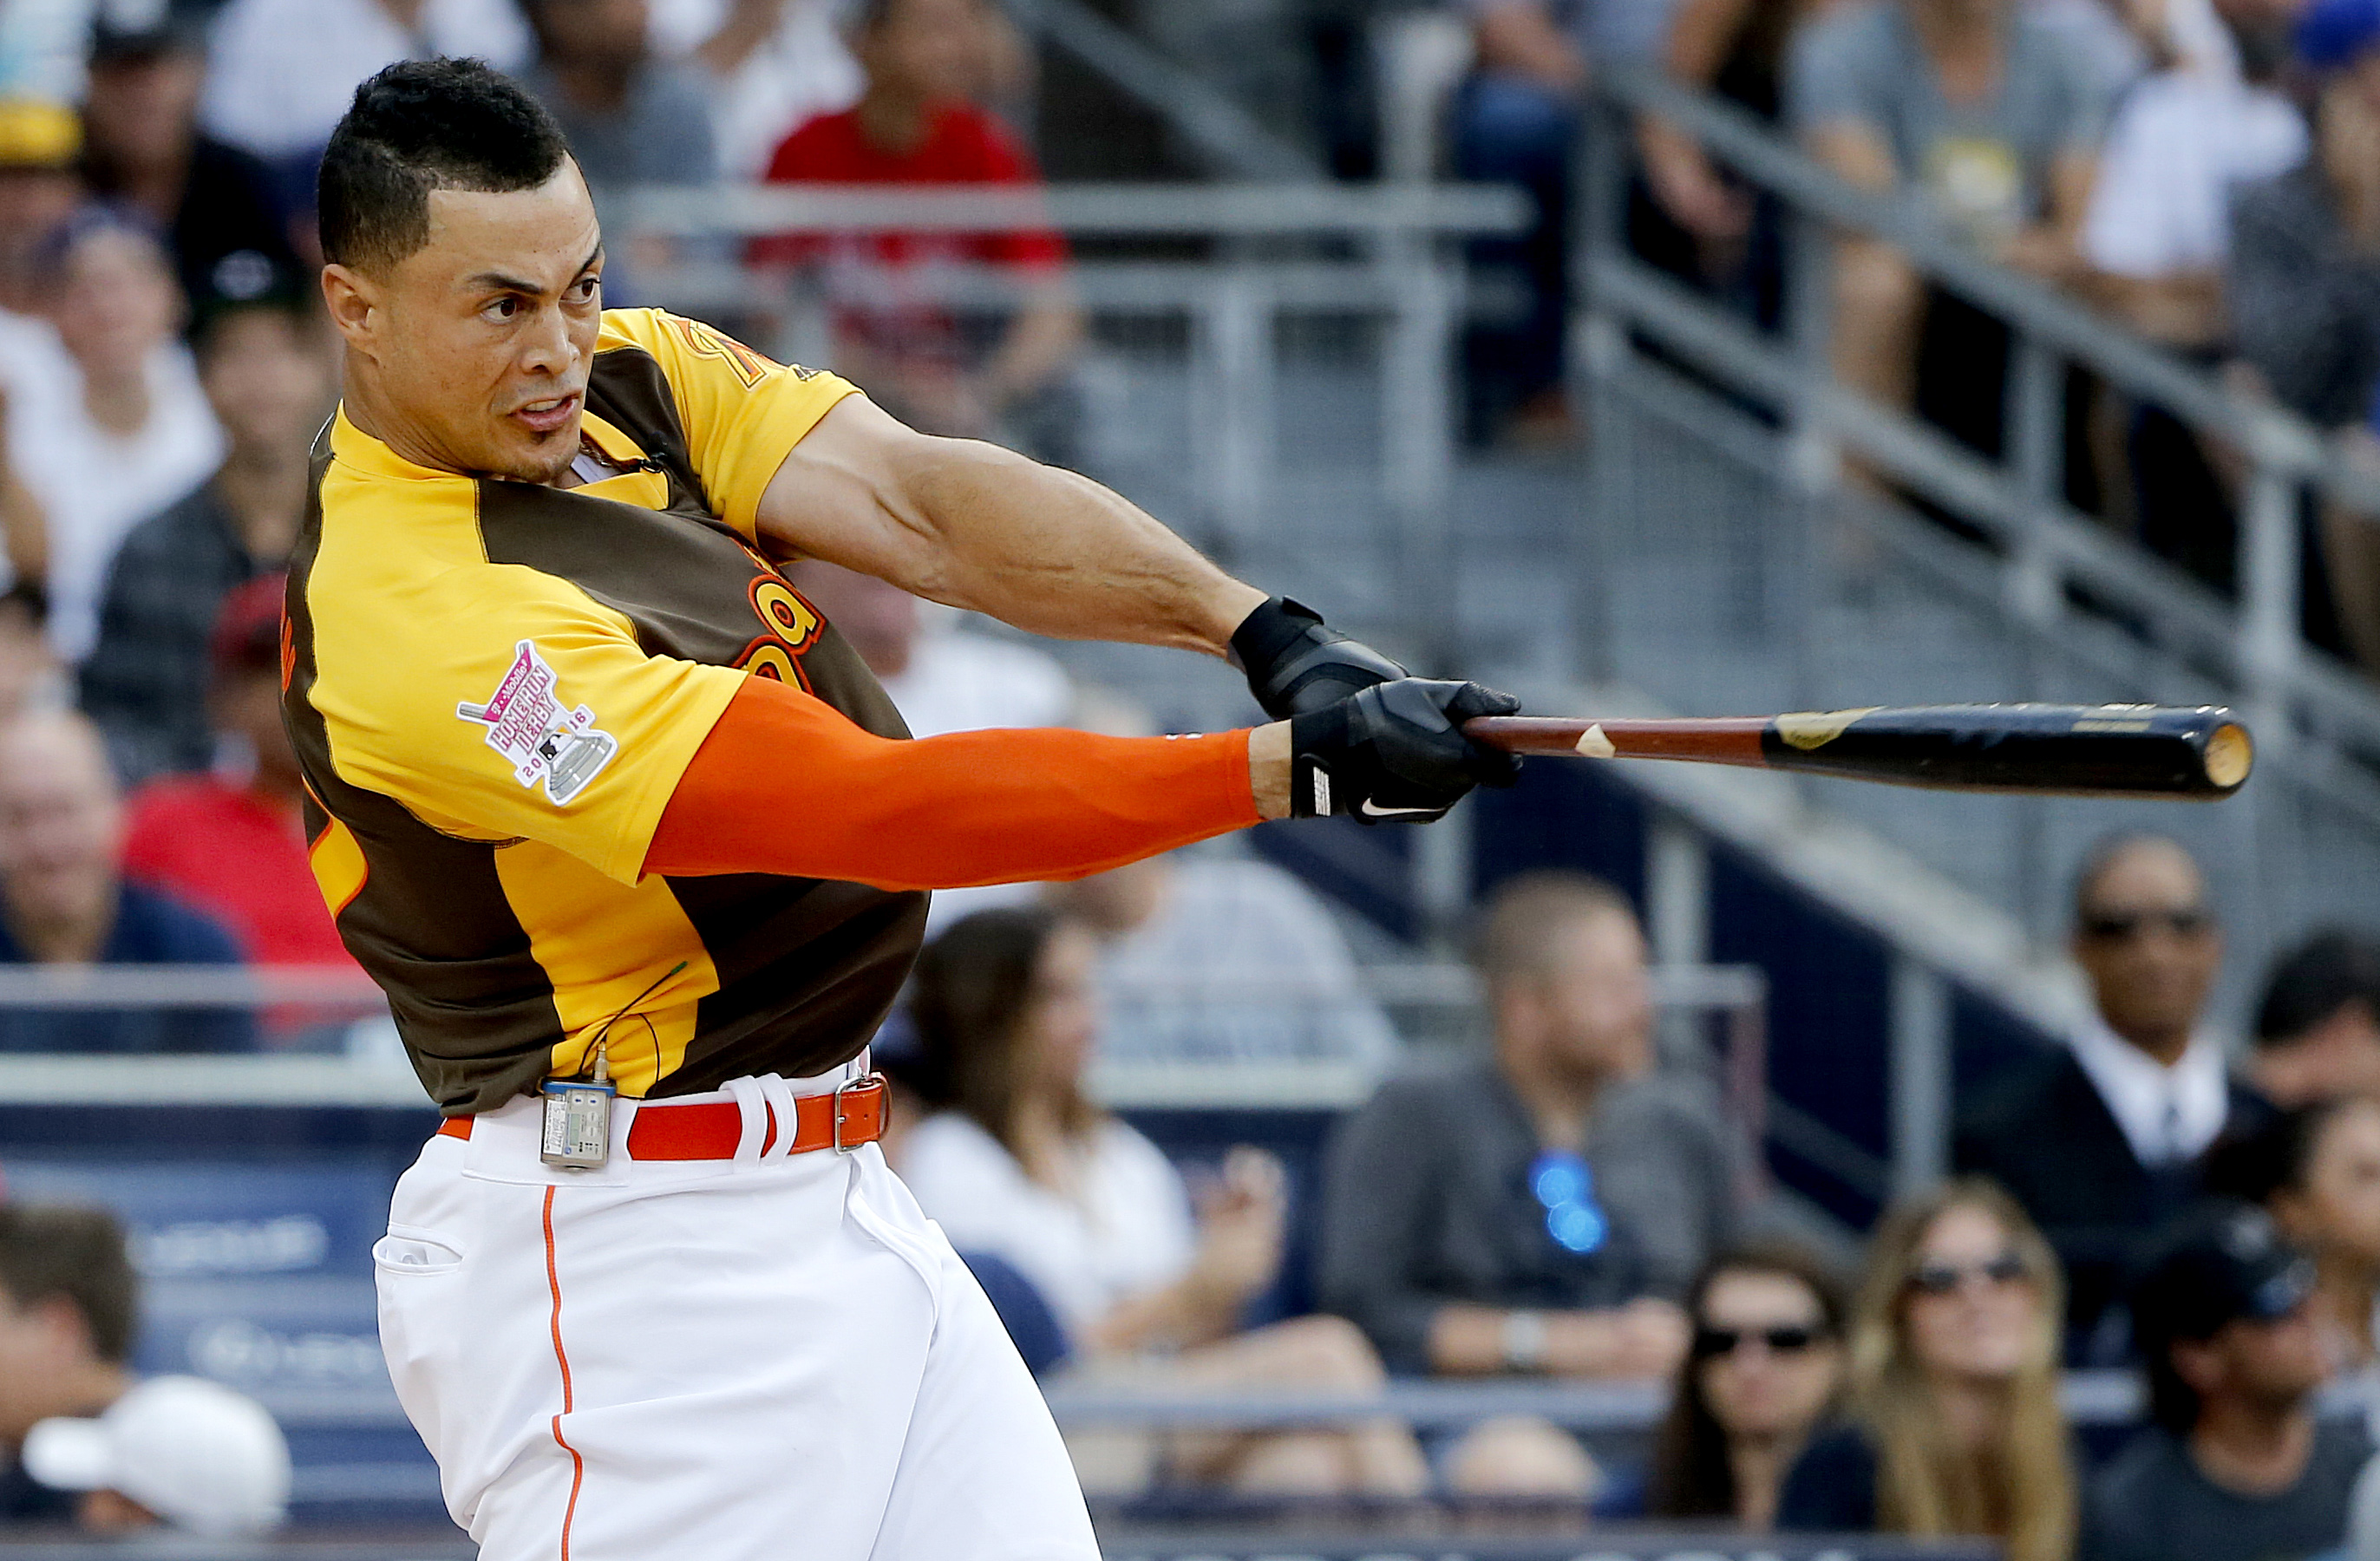 Giancarlo Stanton beats Todd Frazier to win All Star Home Run